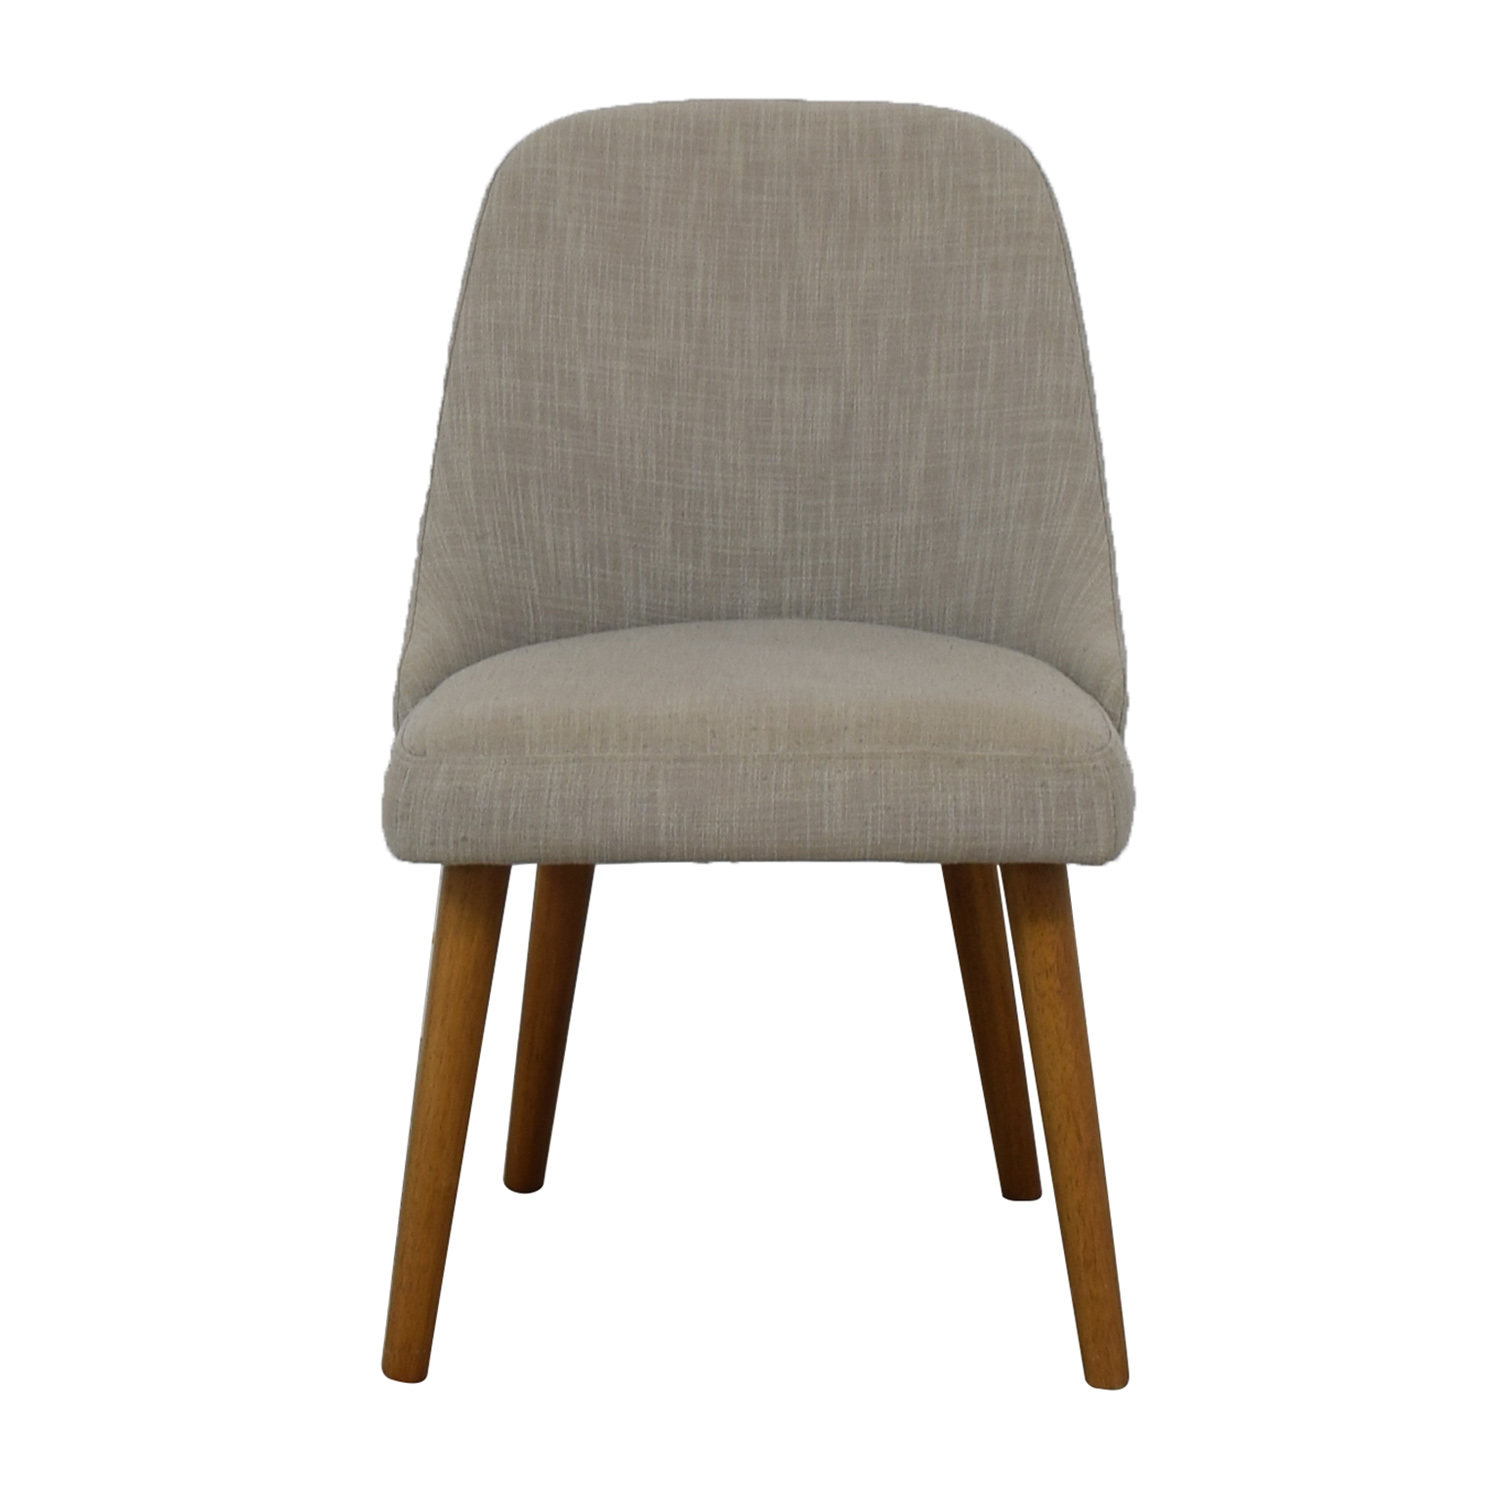 West Elm West Elm Upholstered Grey Tweed Dining Chair coupon